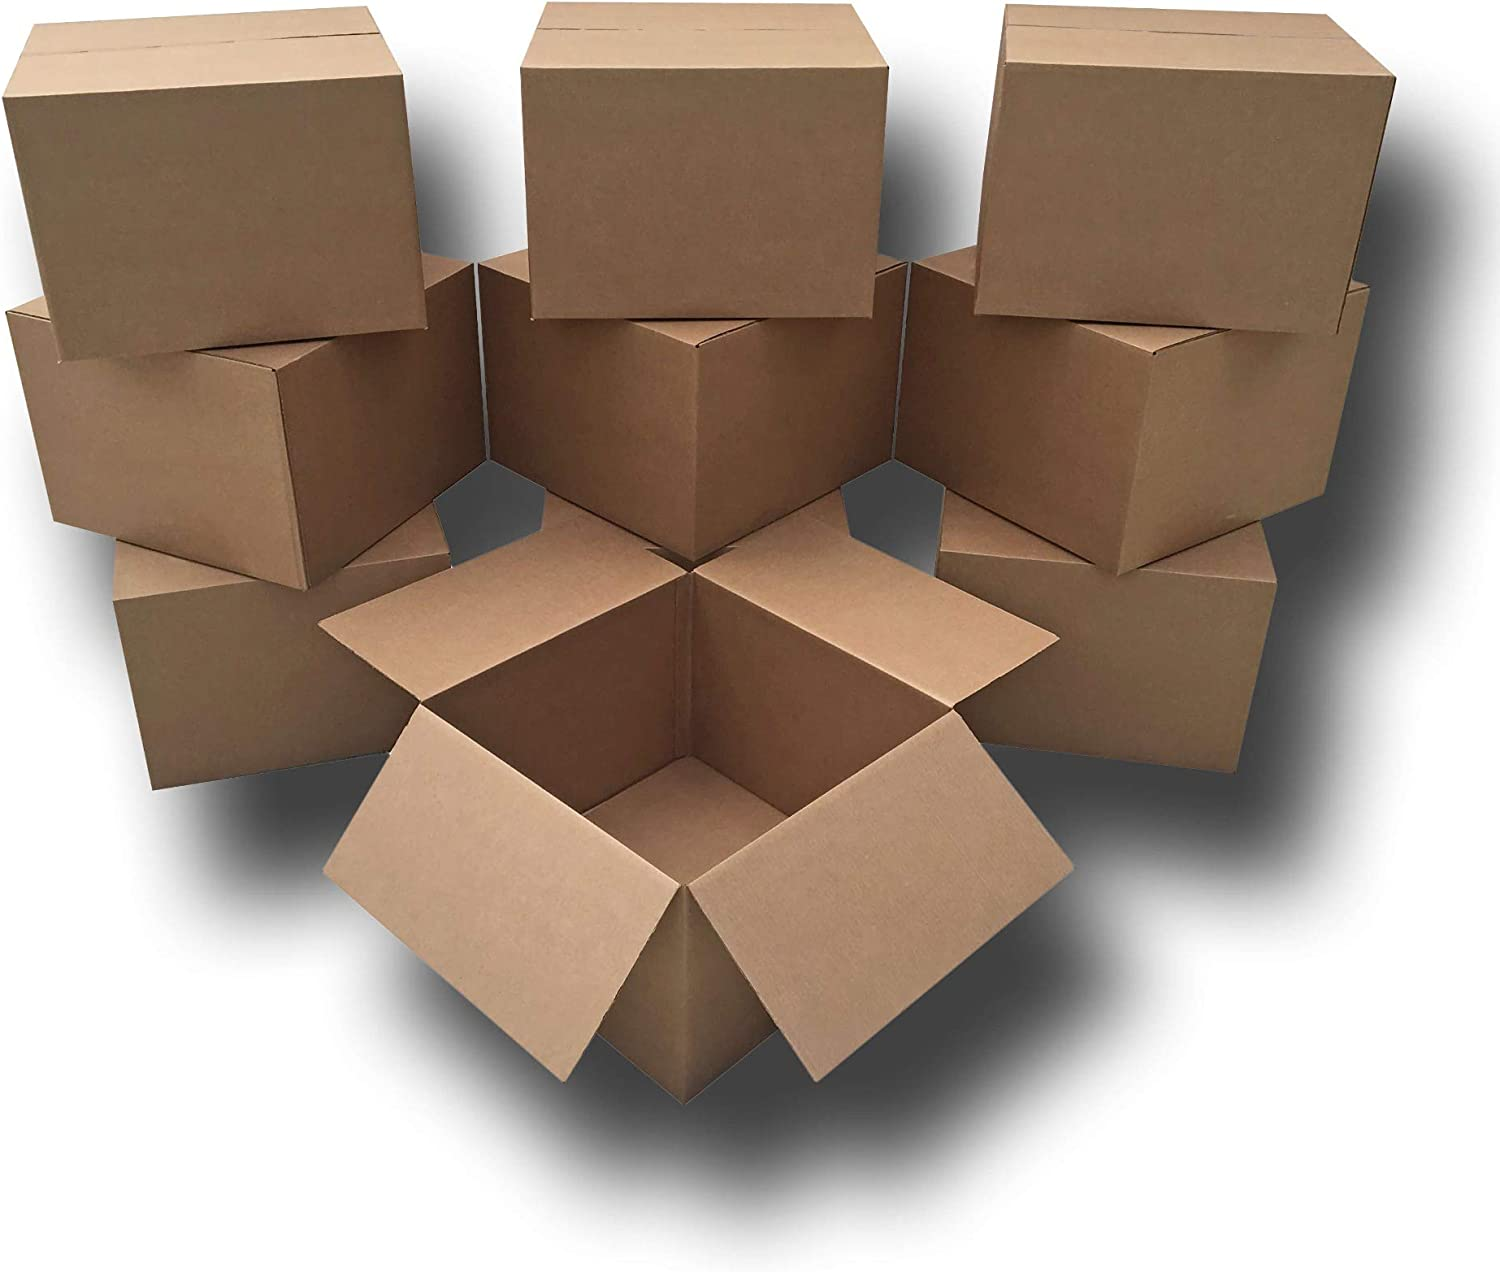 Uboxes 10 Extra Large Moving Boxes 23x23x16 Standard Corrugated Moving Box 2 Pack 23 x 23 x 16